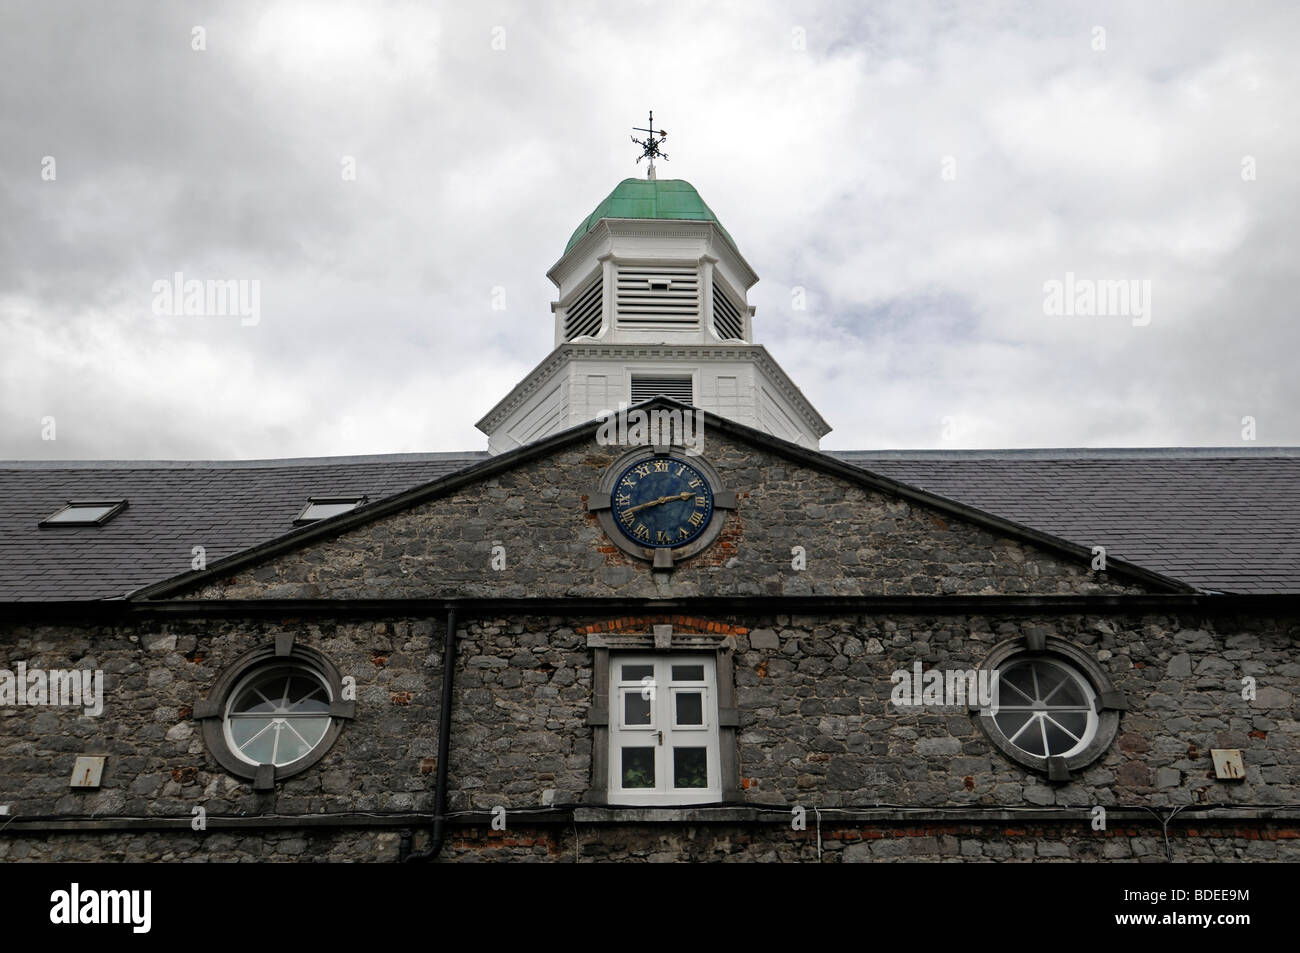 View of the clock tower in Kilkenny Workshops Converted Stables, Kilkenny City, County Kilkenny, Ireland - Stock Image